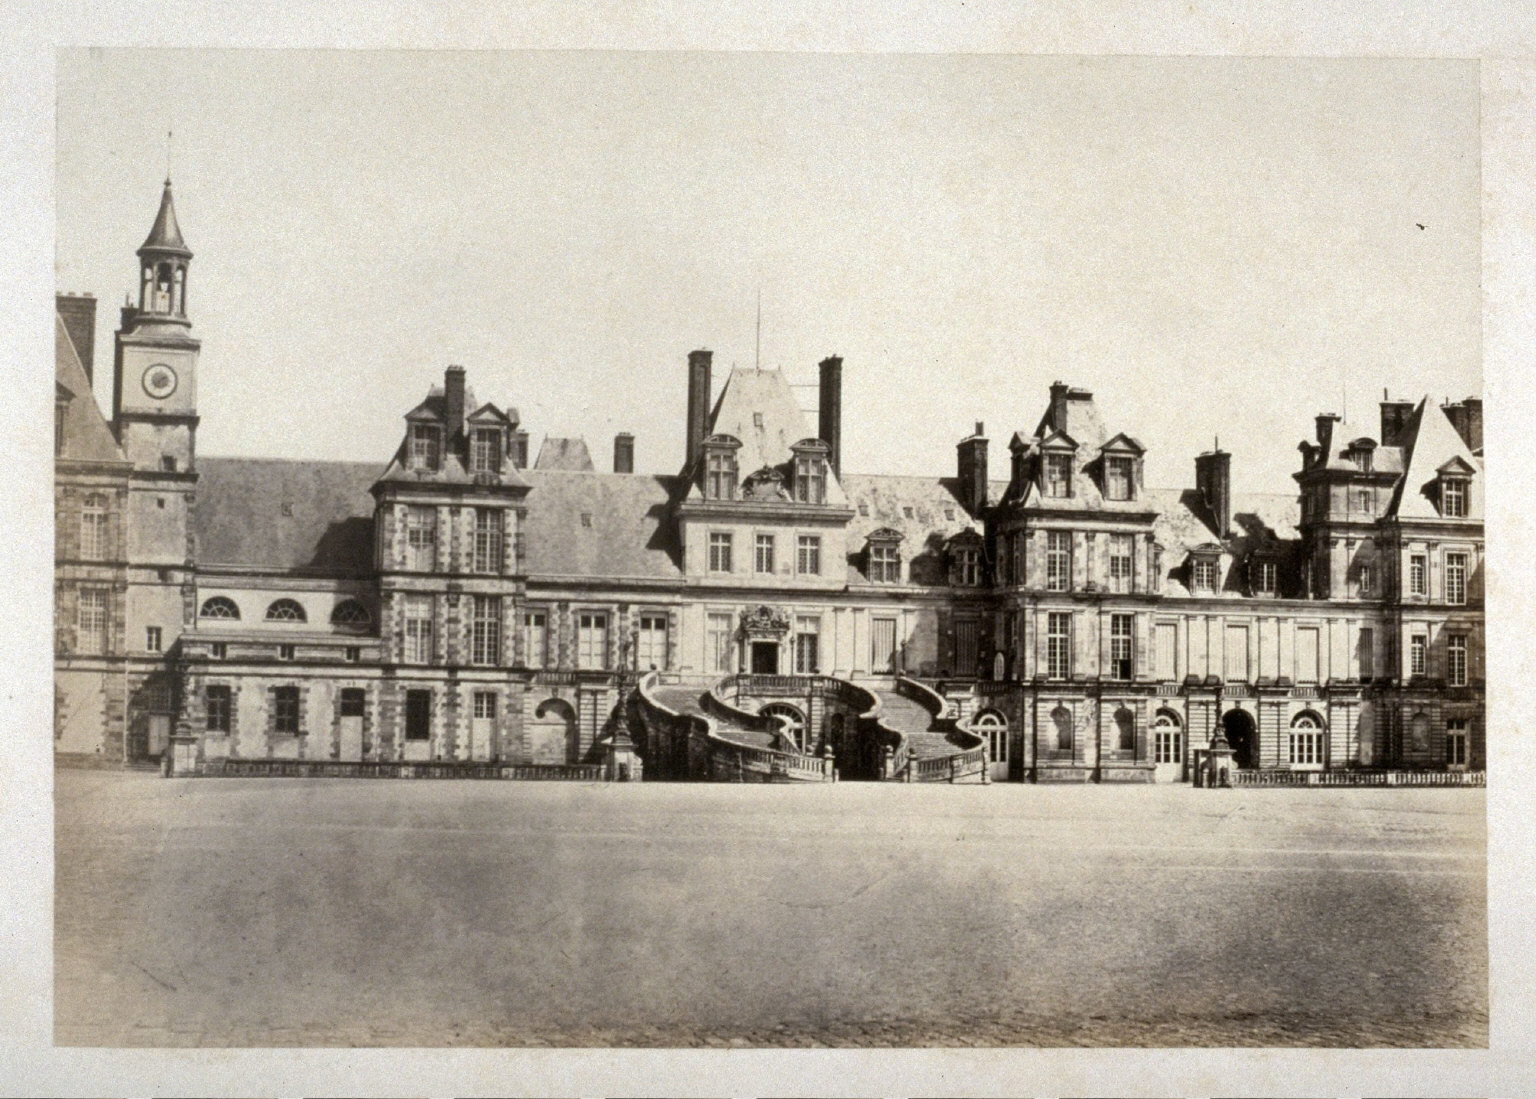 #39 (House with staircase) from 11 albumen prints from Vues de Paris en Photographie, 1858